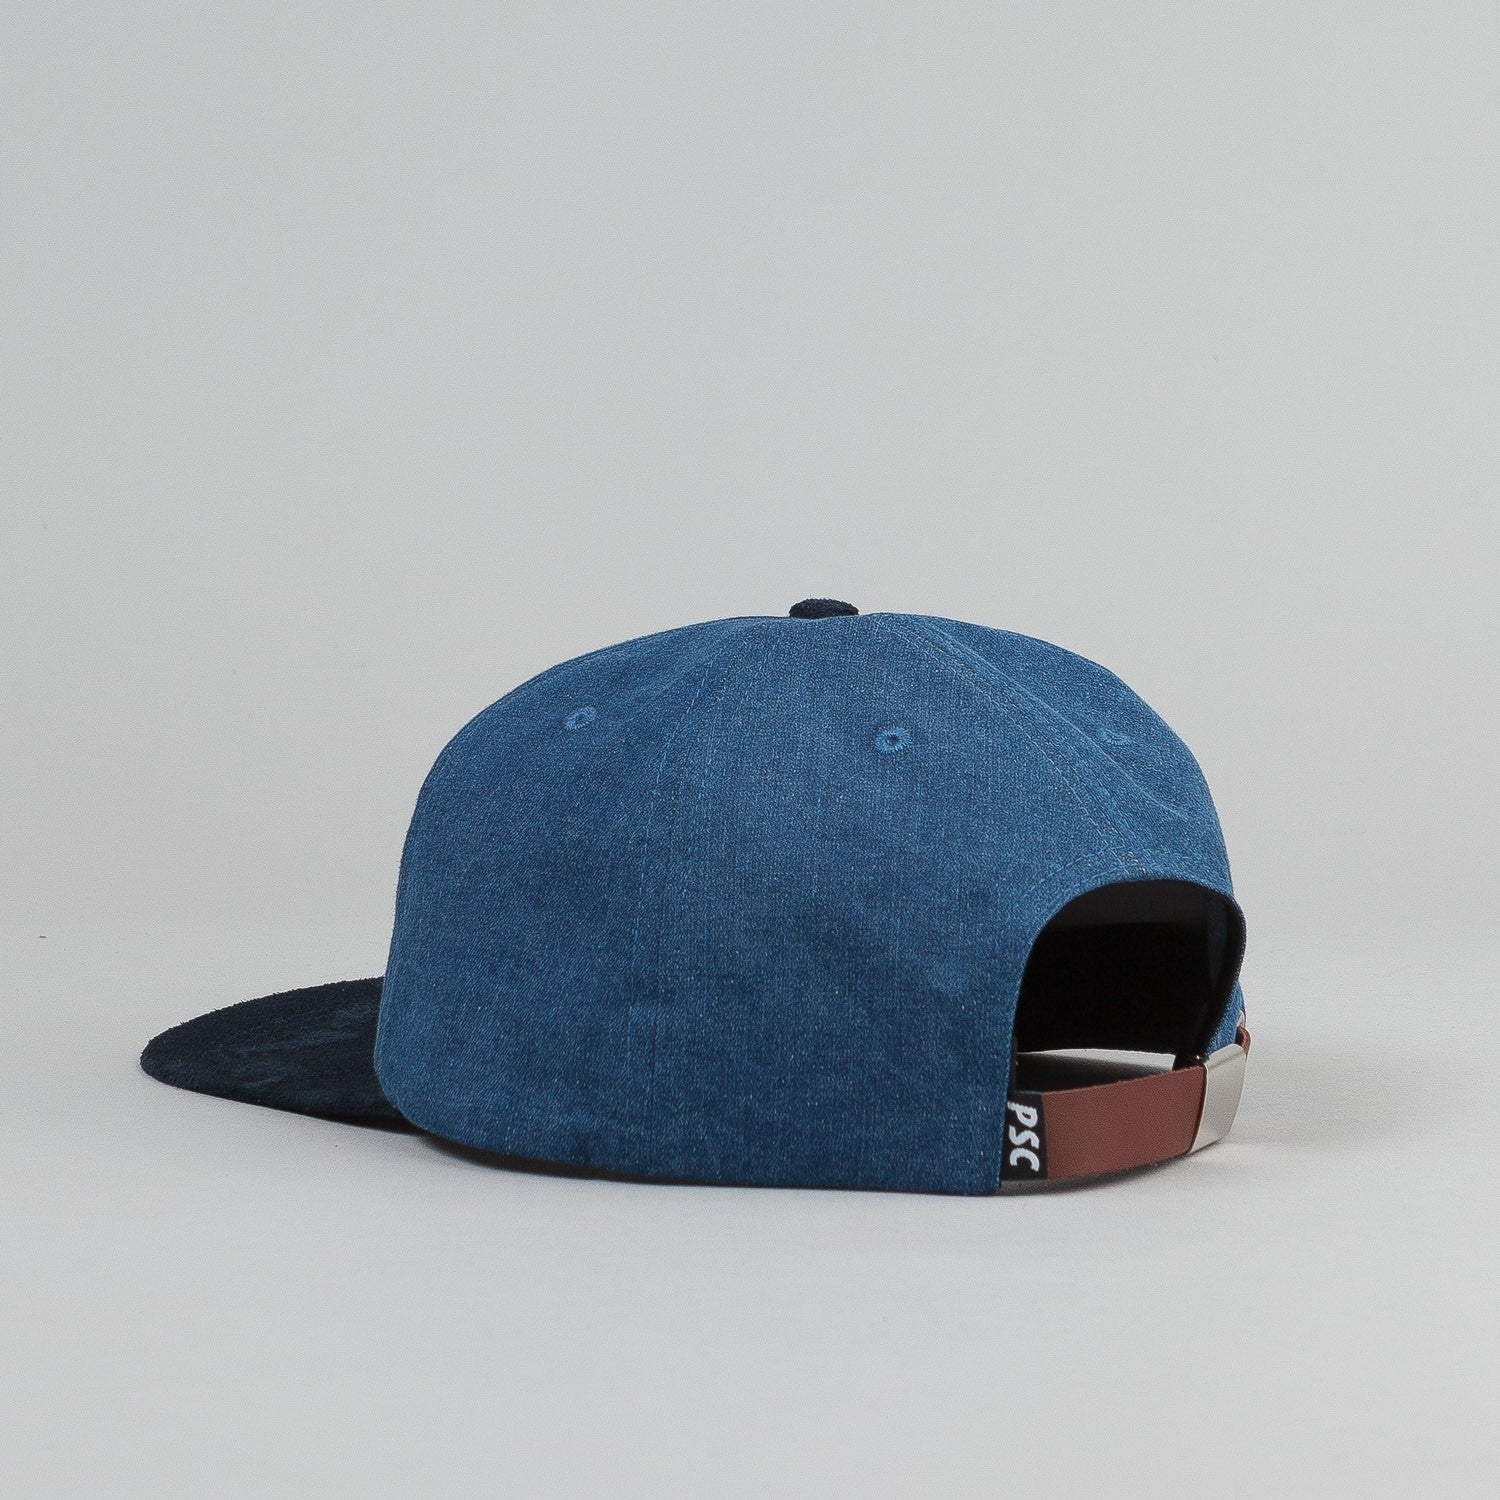 Polar Stroke Logo 6 Panel Cap - Blue Denim / Navy Suede Brim